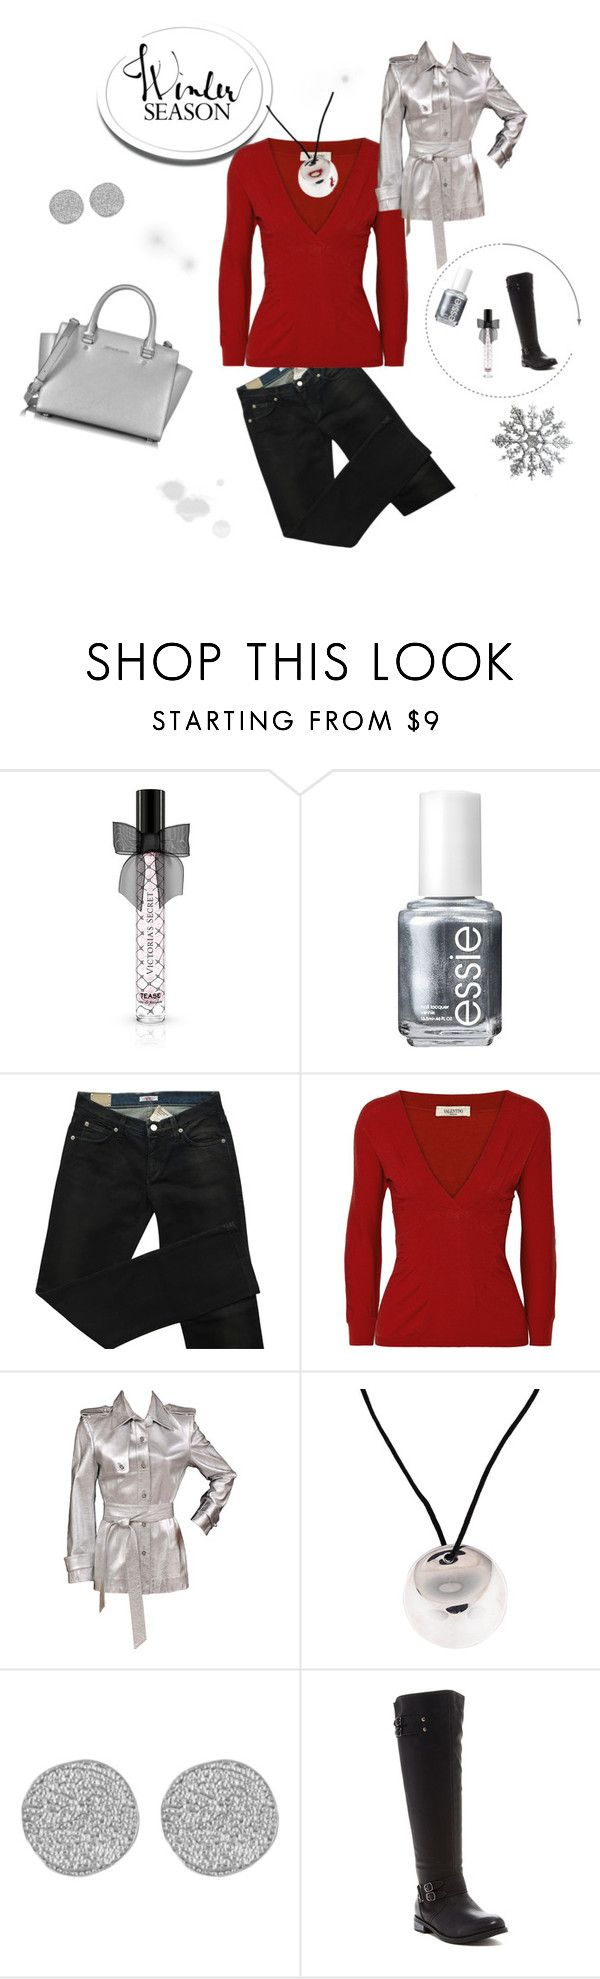 Chilly Weather by keetyrn on Polyvore featuring Valentino, Versace, Chase & Chloe, Michael Kors, Karen Kane, Tiffany & Co., Victoria's Secret and Essie